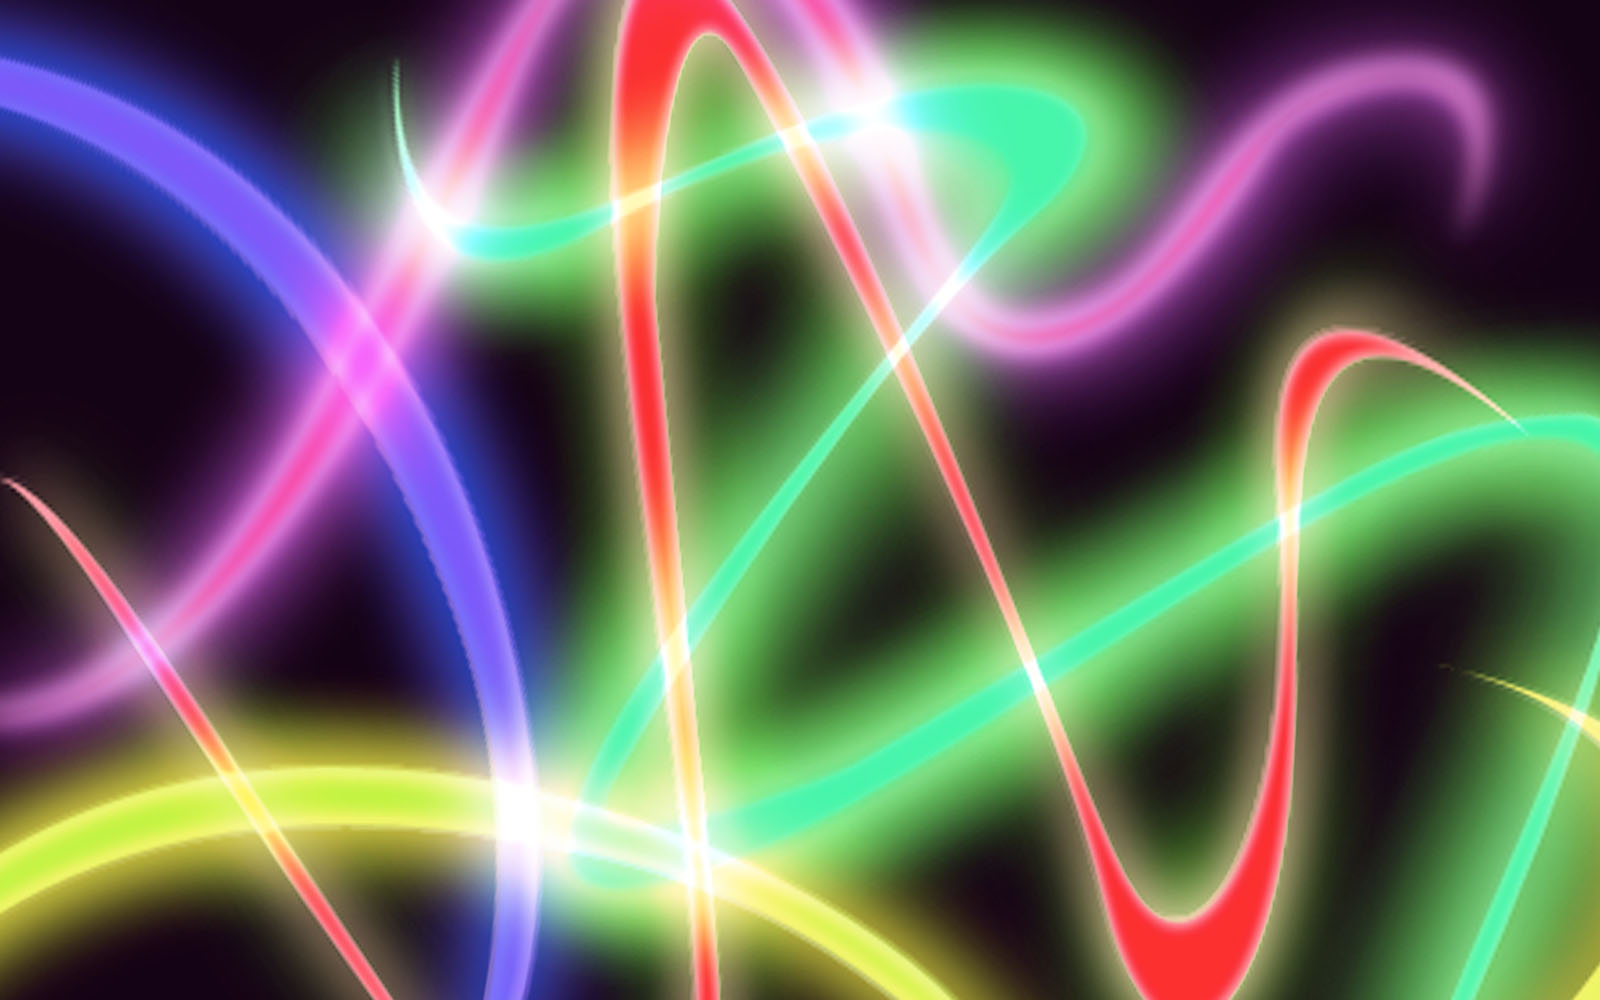 abstract neon wallpapers 4